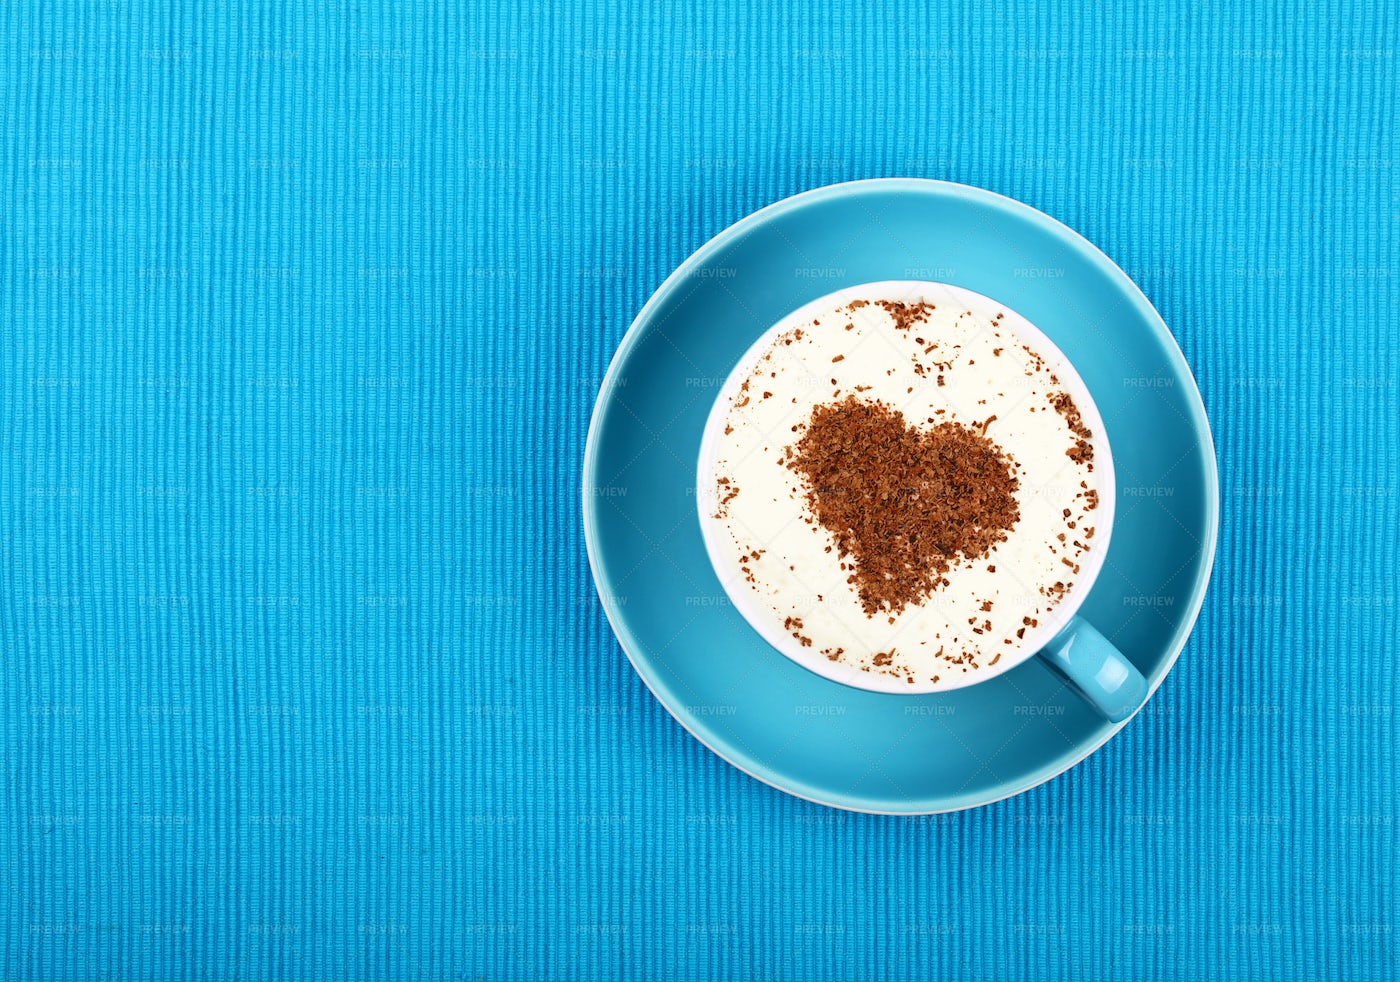 Cappuccino Coffee With Heart: Stock Photos